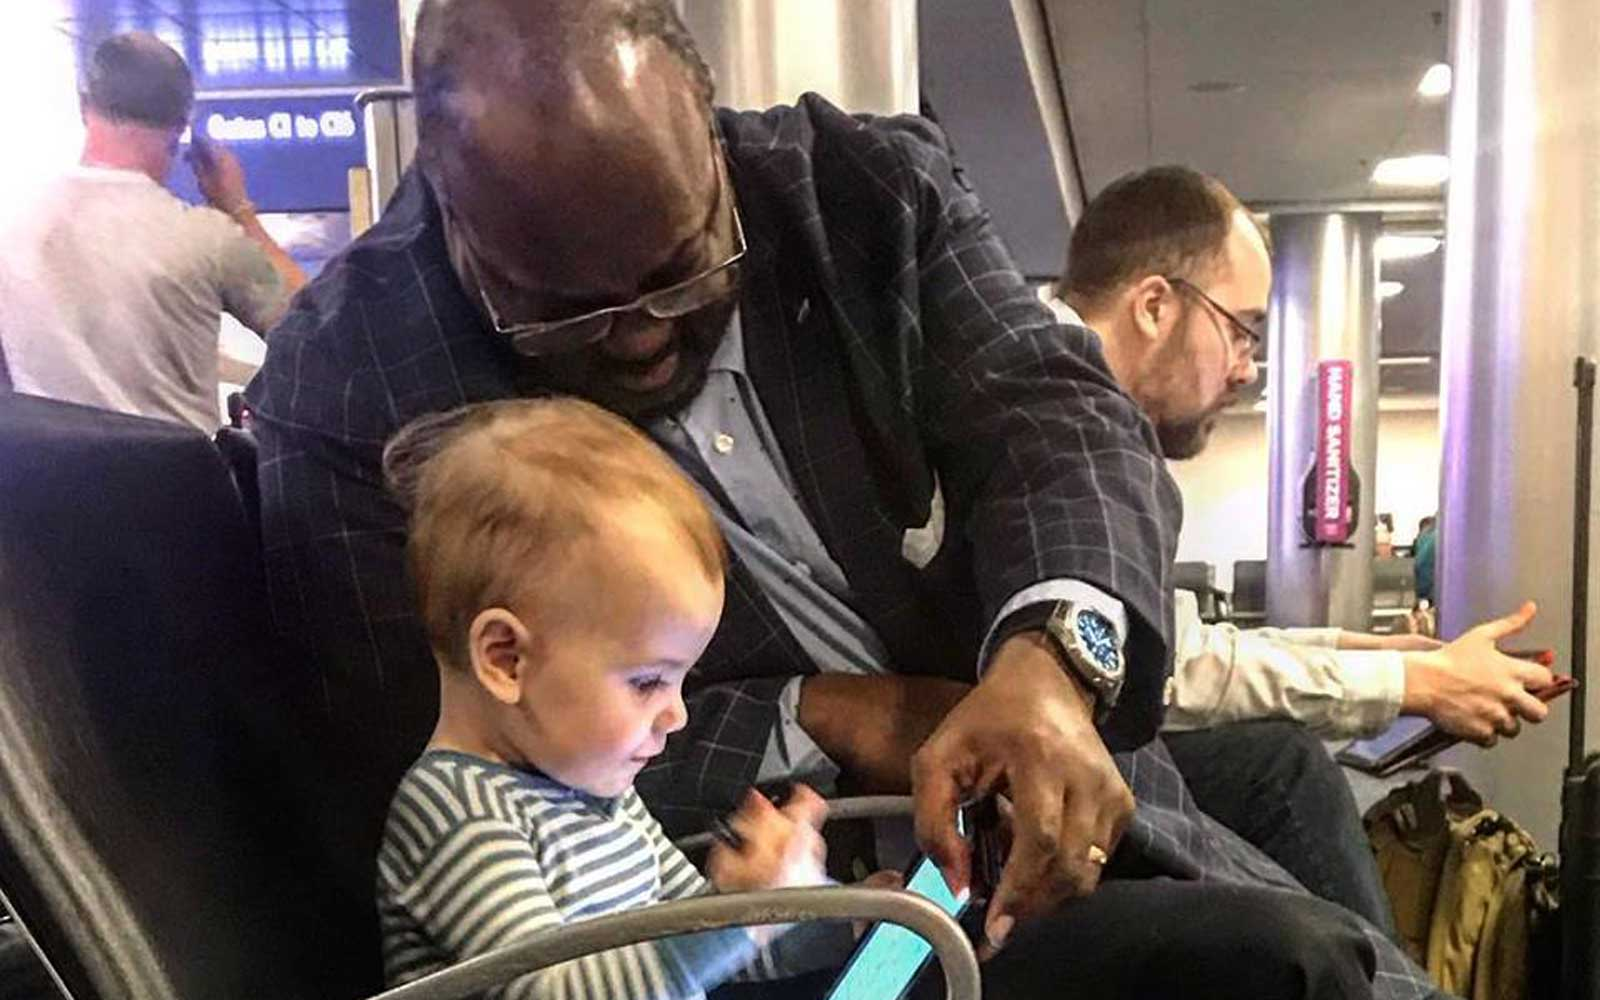 Kevin Armentrout's daughter, Carter Jean, and new friend at airport